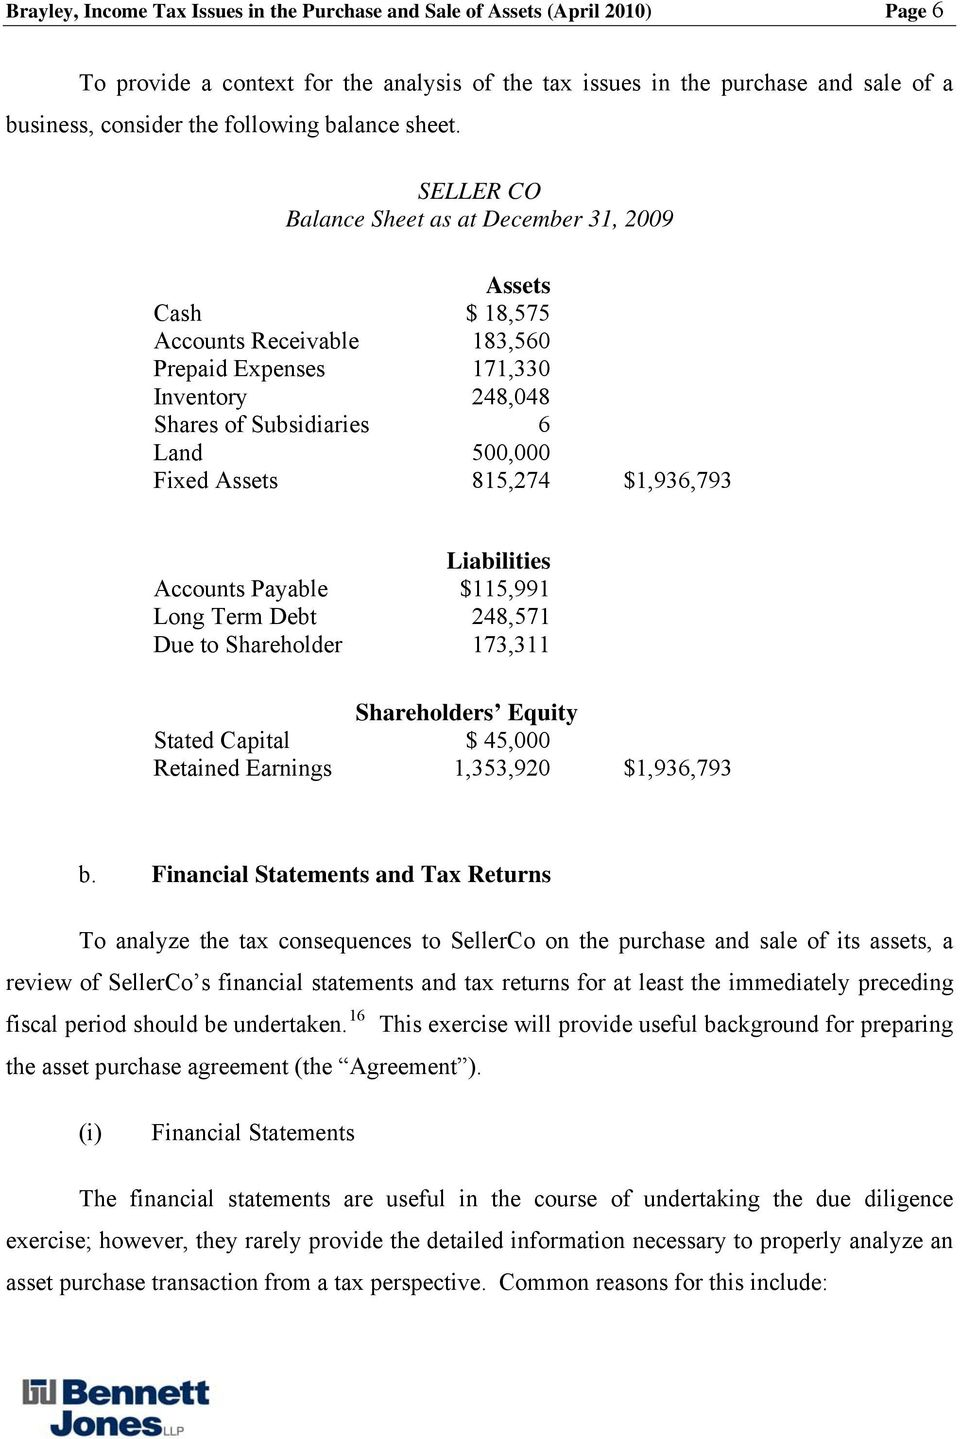 SELLER CO Balance Sheet as at December 31, 2009 Assets Cash $ 18,575 Accounts Receivable 183,560 Prepaid Expenses 171,330 Inventory 248,048 Shares of Subsidiaries 6 Land 500,000 Fixed Assets 815,274